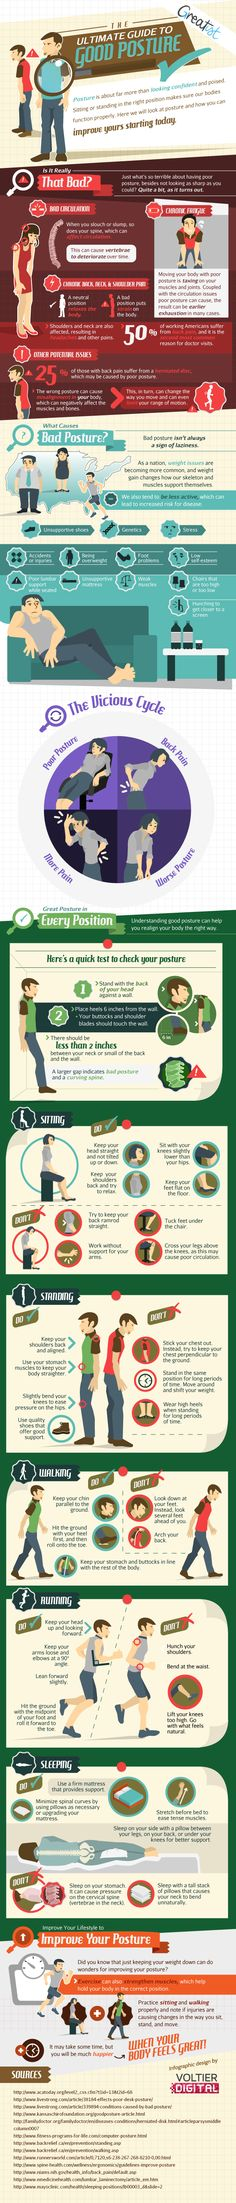 Good Posture Guide Infographic #Fitness #Personaltrainer #Personaltraining #Personal #trainer #training #workout #Gym #weight-loss